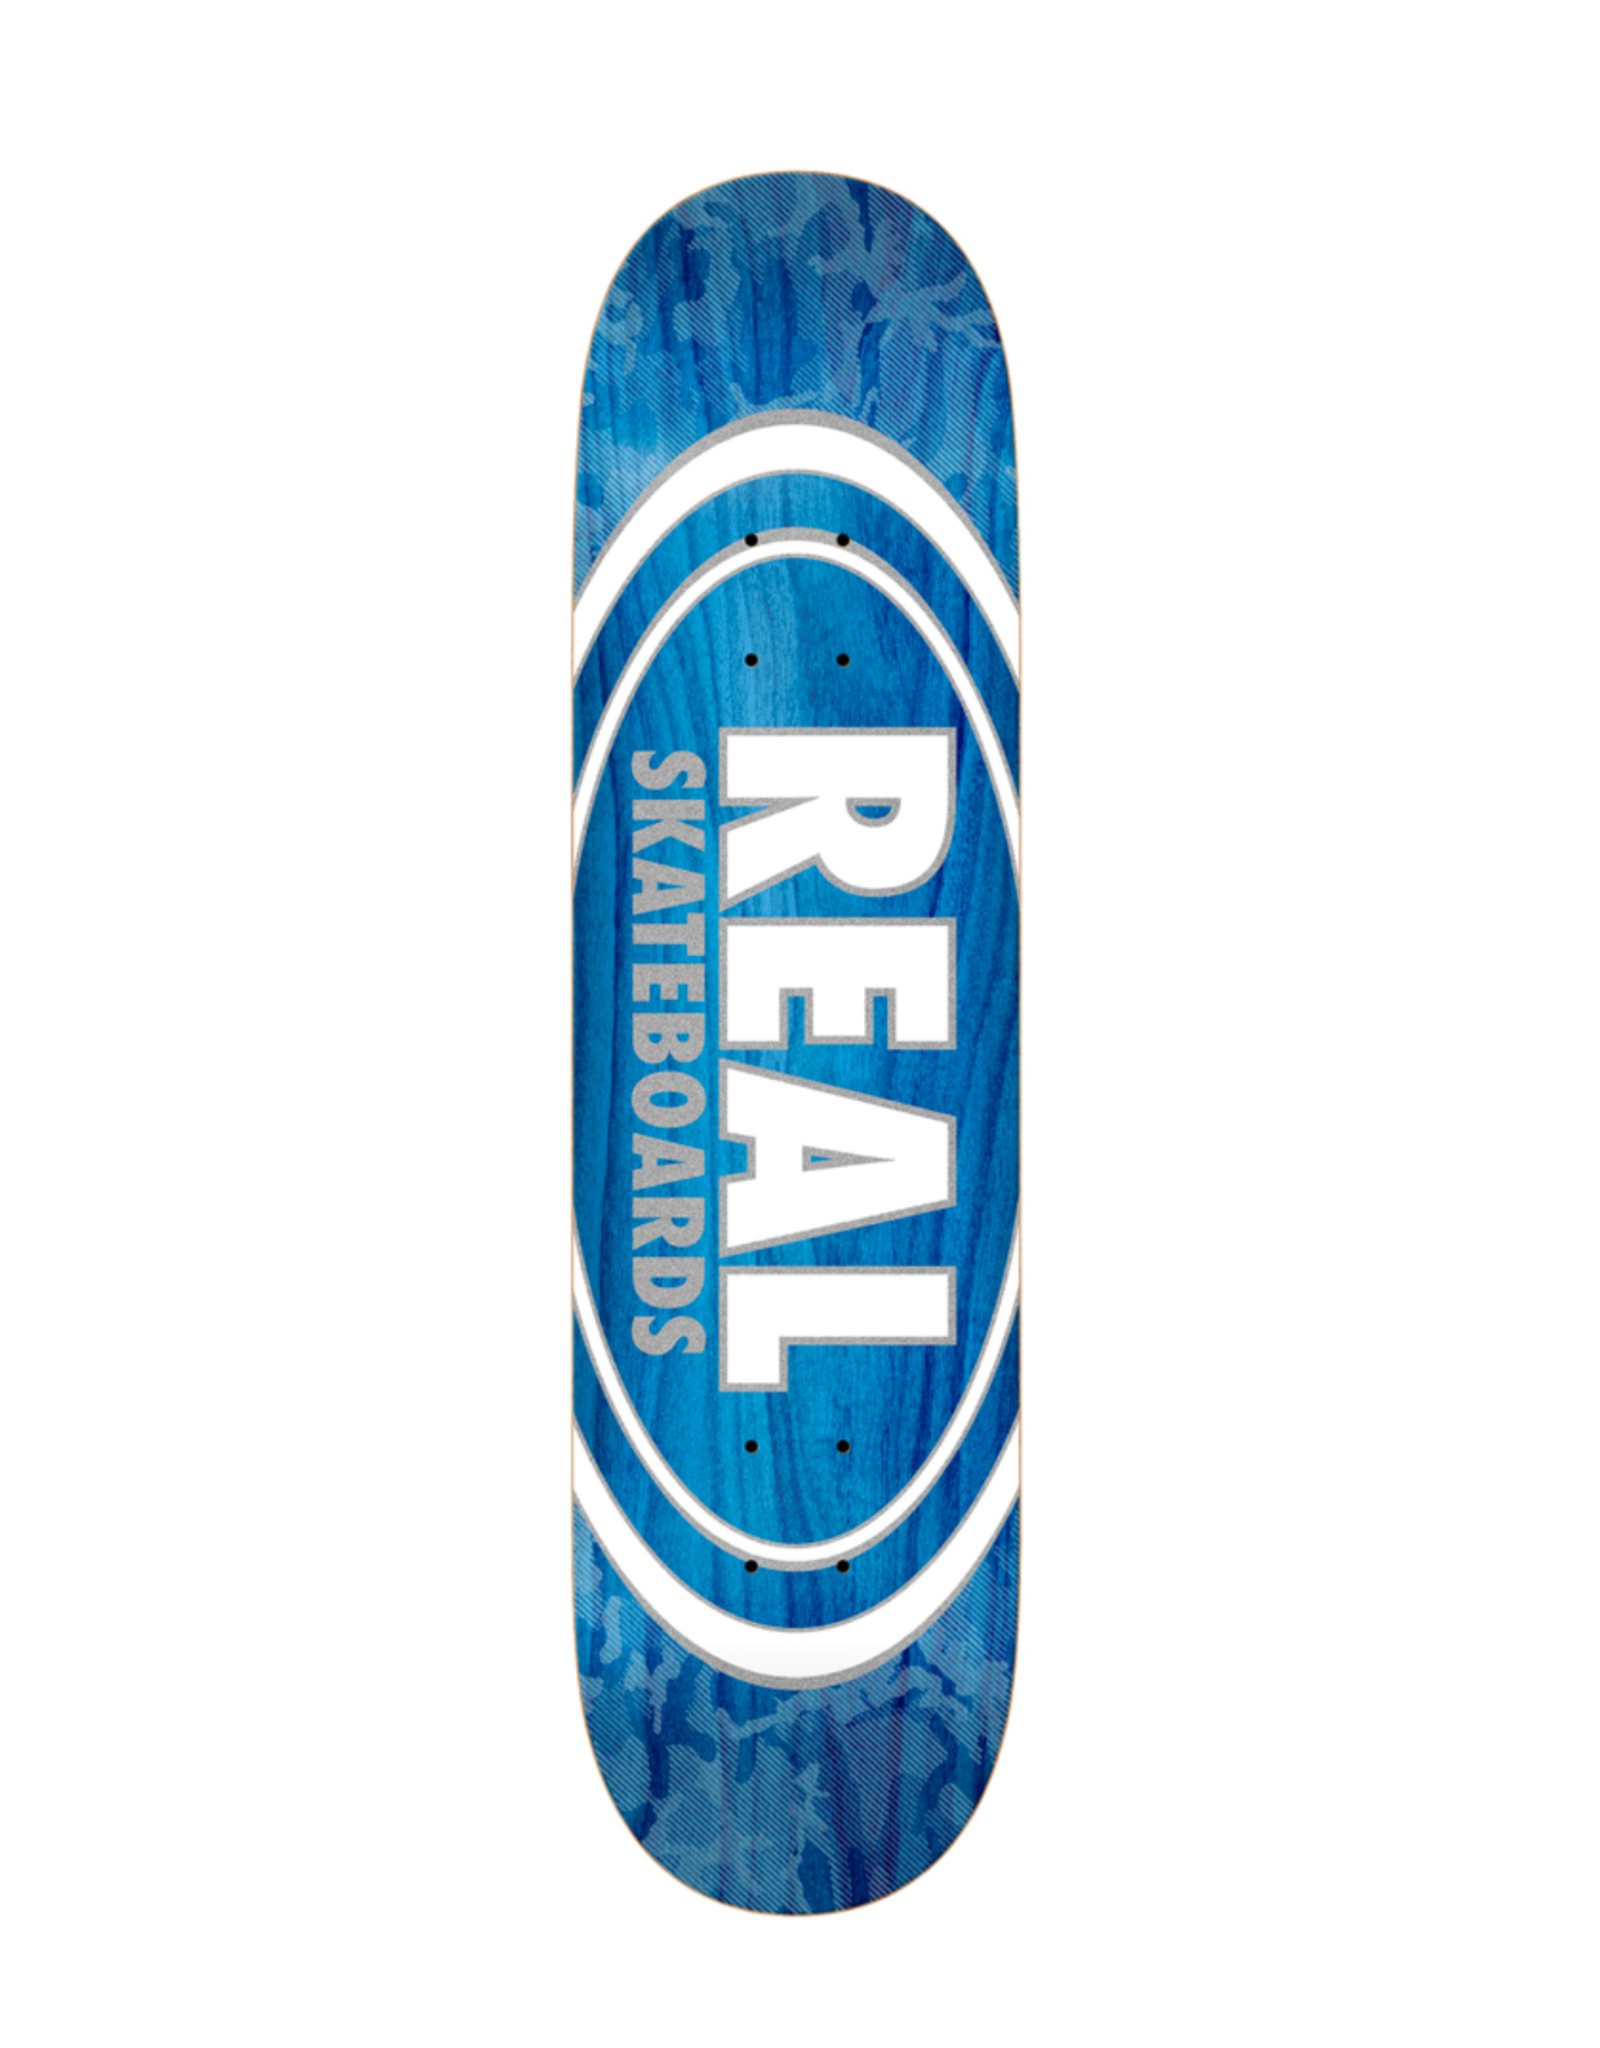 REAL REAL - OVAL PATTERNS TEAM - 8.75